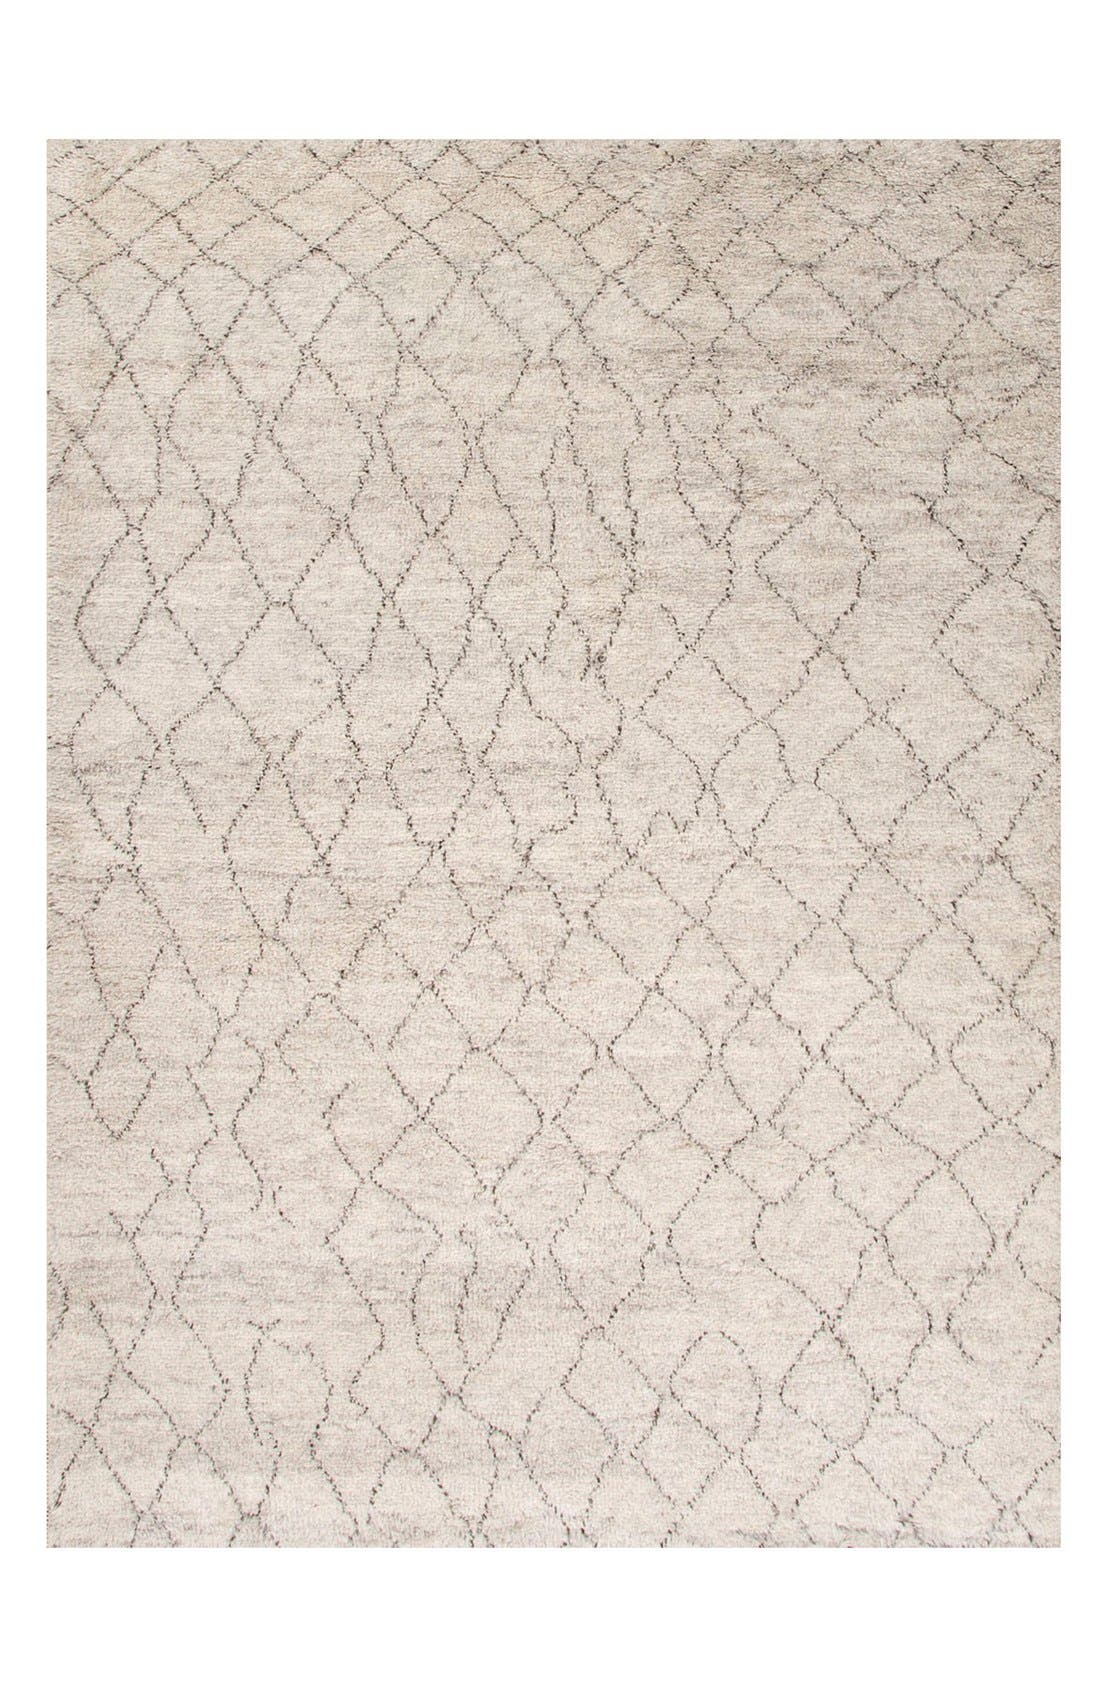 'Zola Irregular Lines' Wool Rug,                             Main thumbnail 1, color,                             Ivory/ Brown